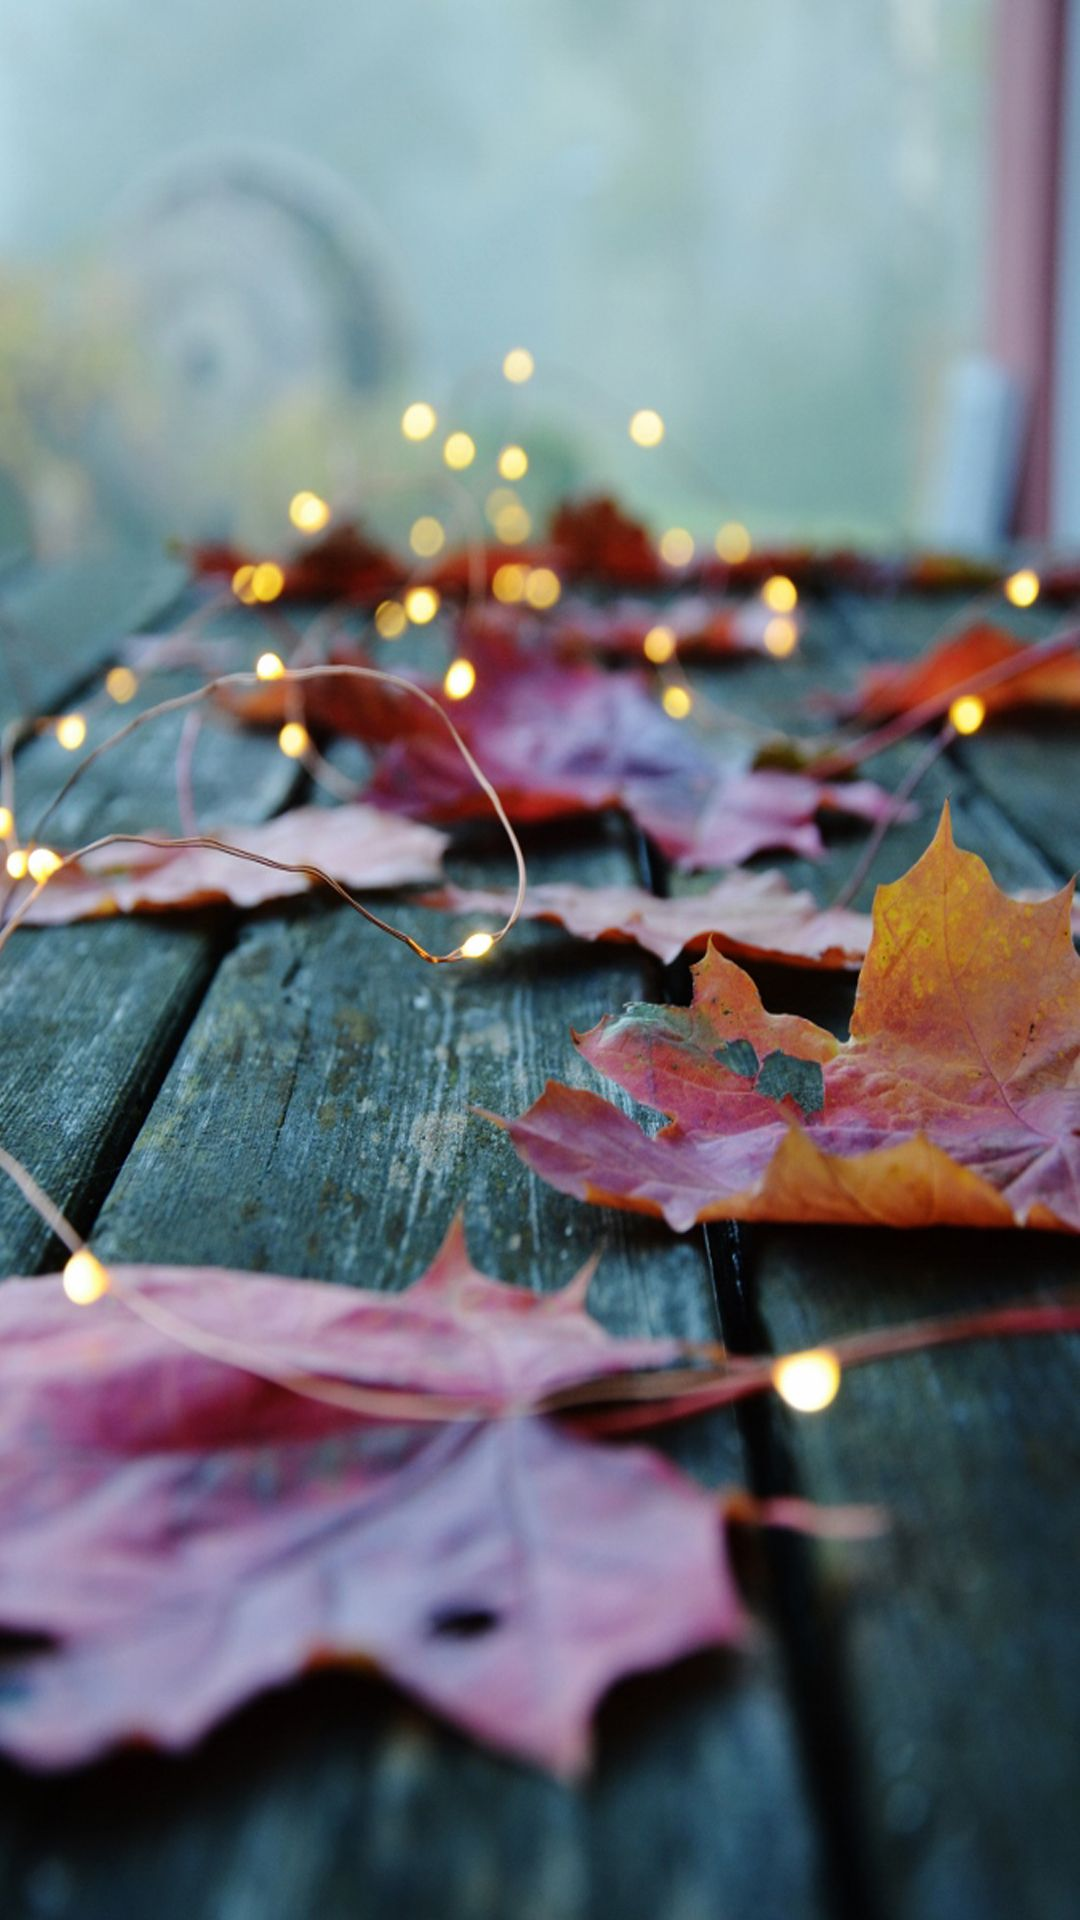 Pin By Vactual Papers On Mobile Wallpapers Fall Wallpaper